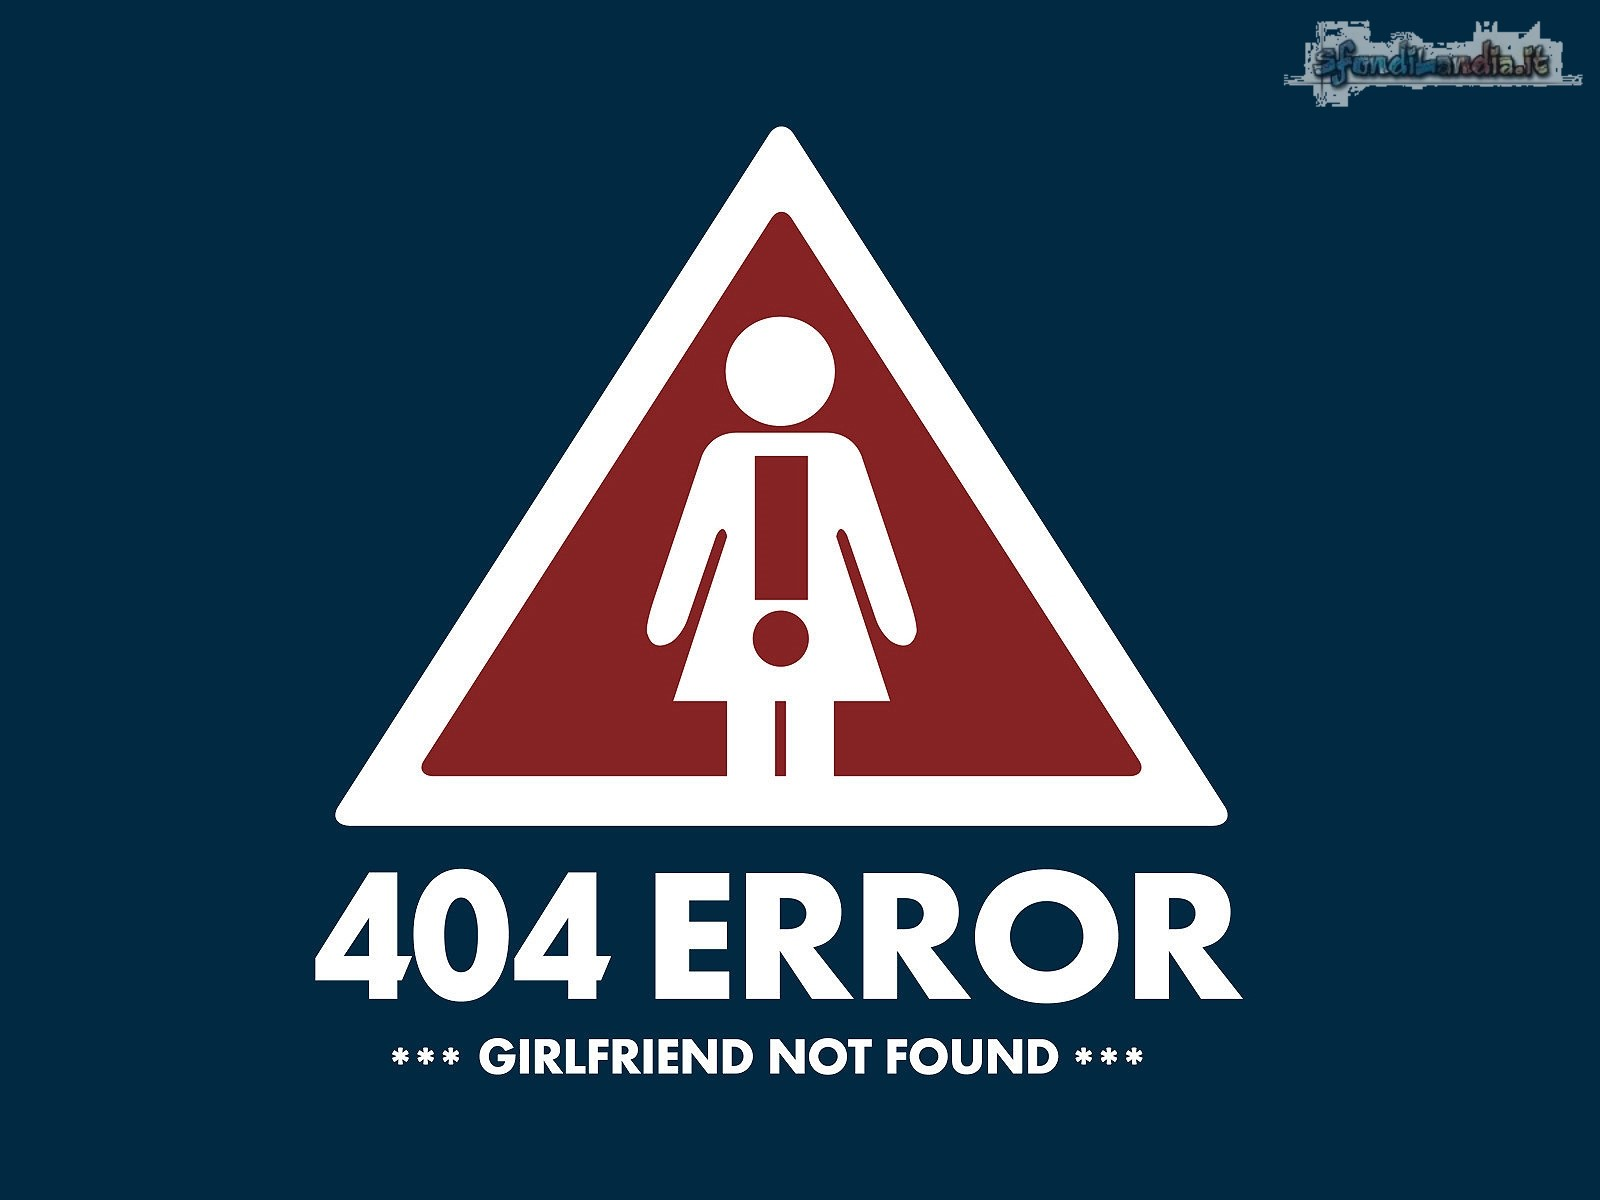 Girlfirend Not Found